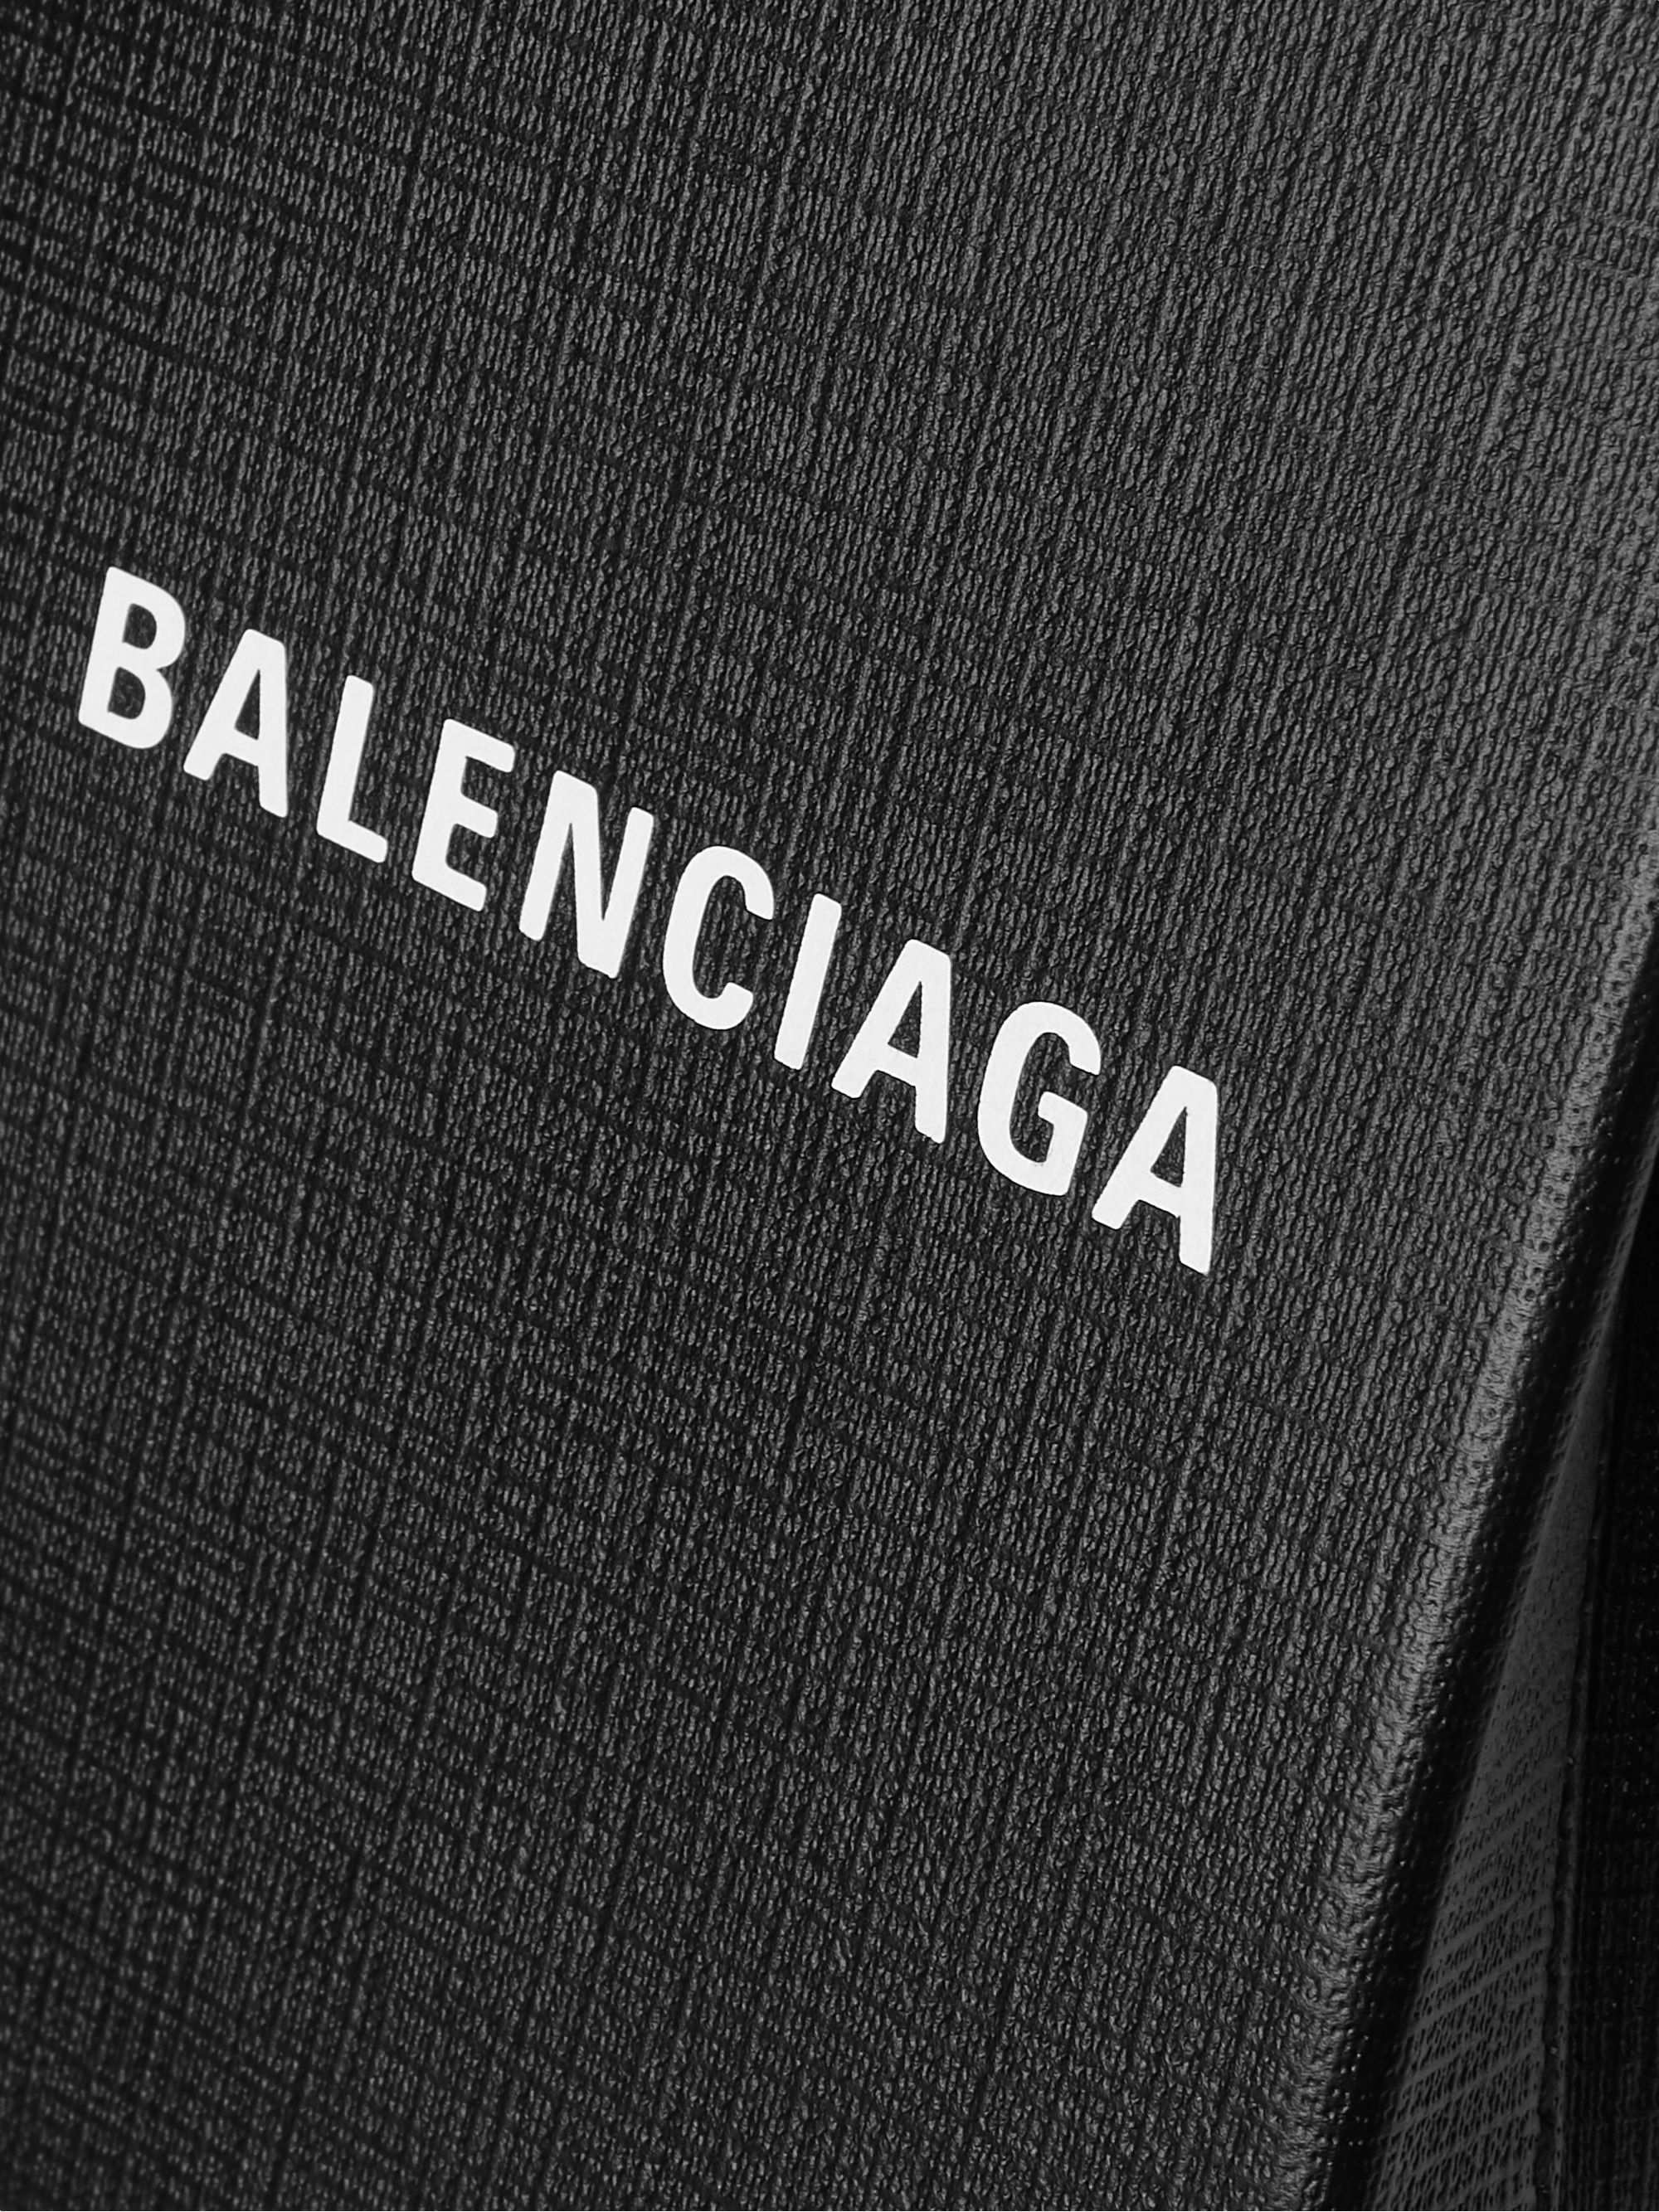 BALENCIAGA Logo-Print Textured-Leather Messenger Bag